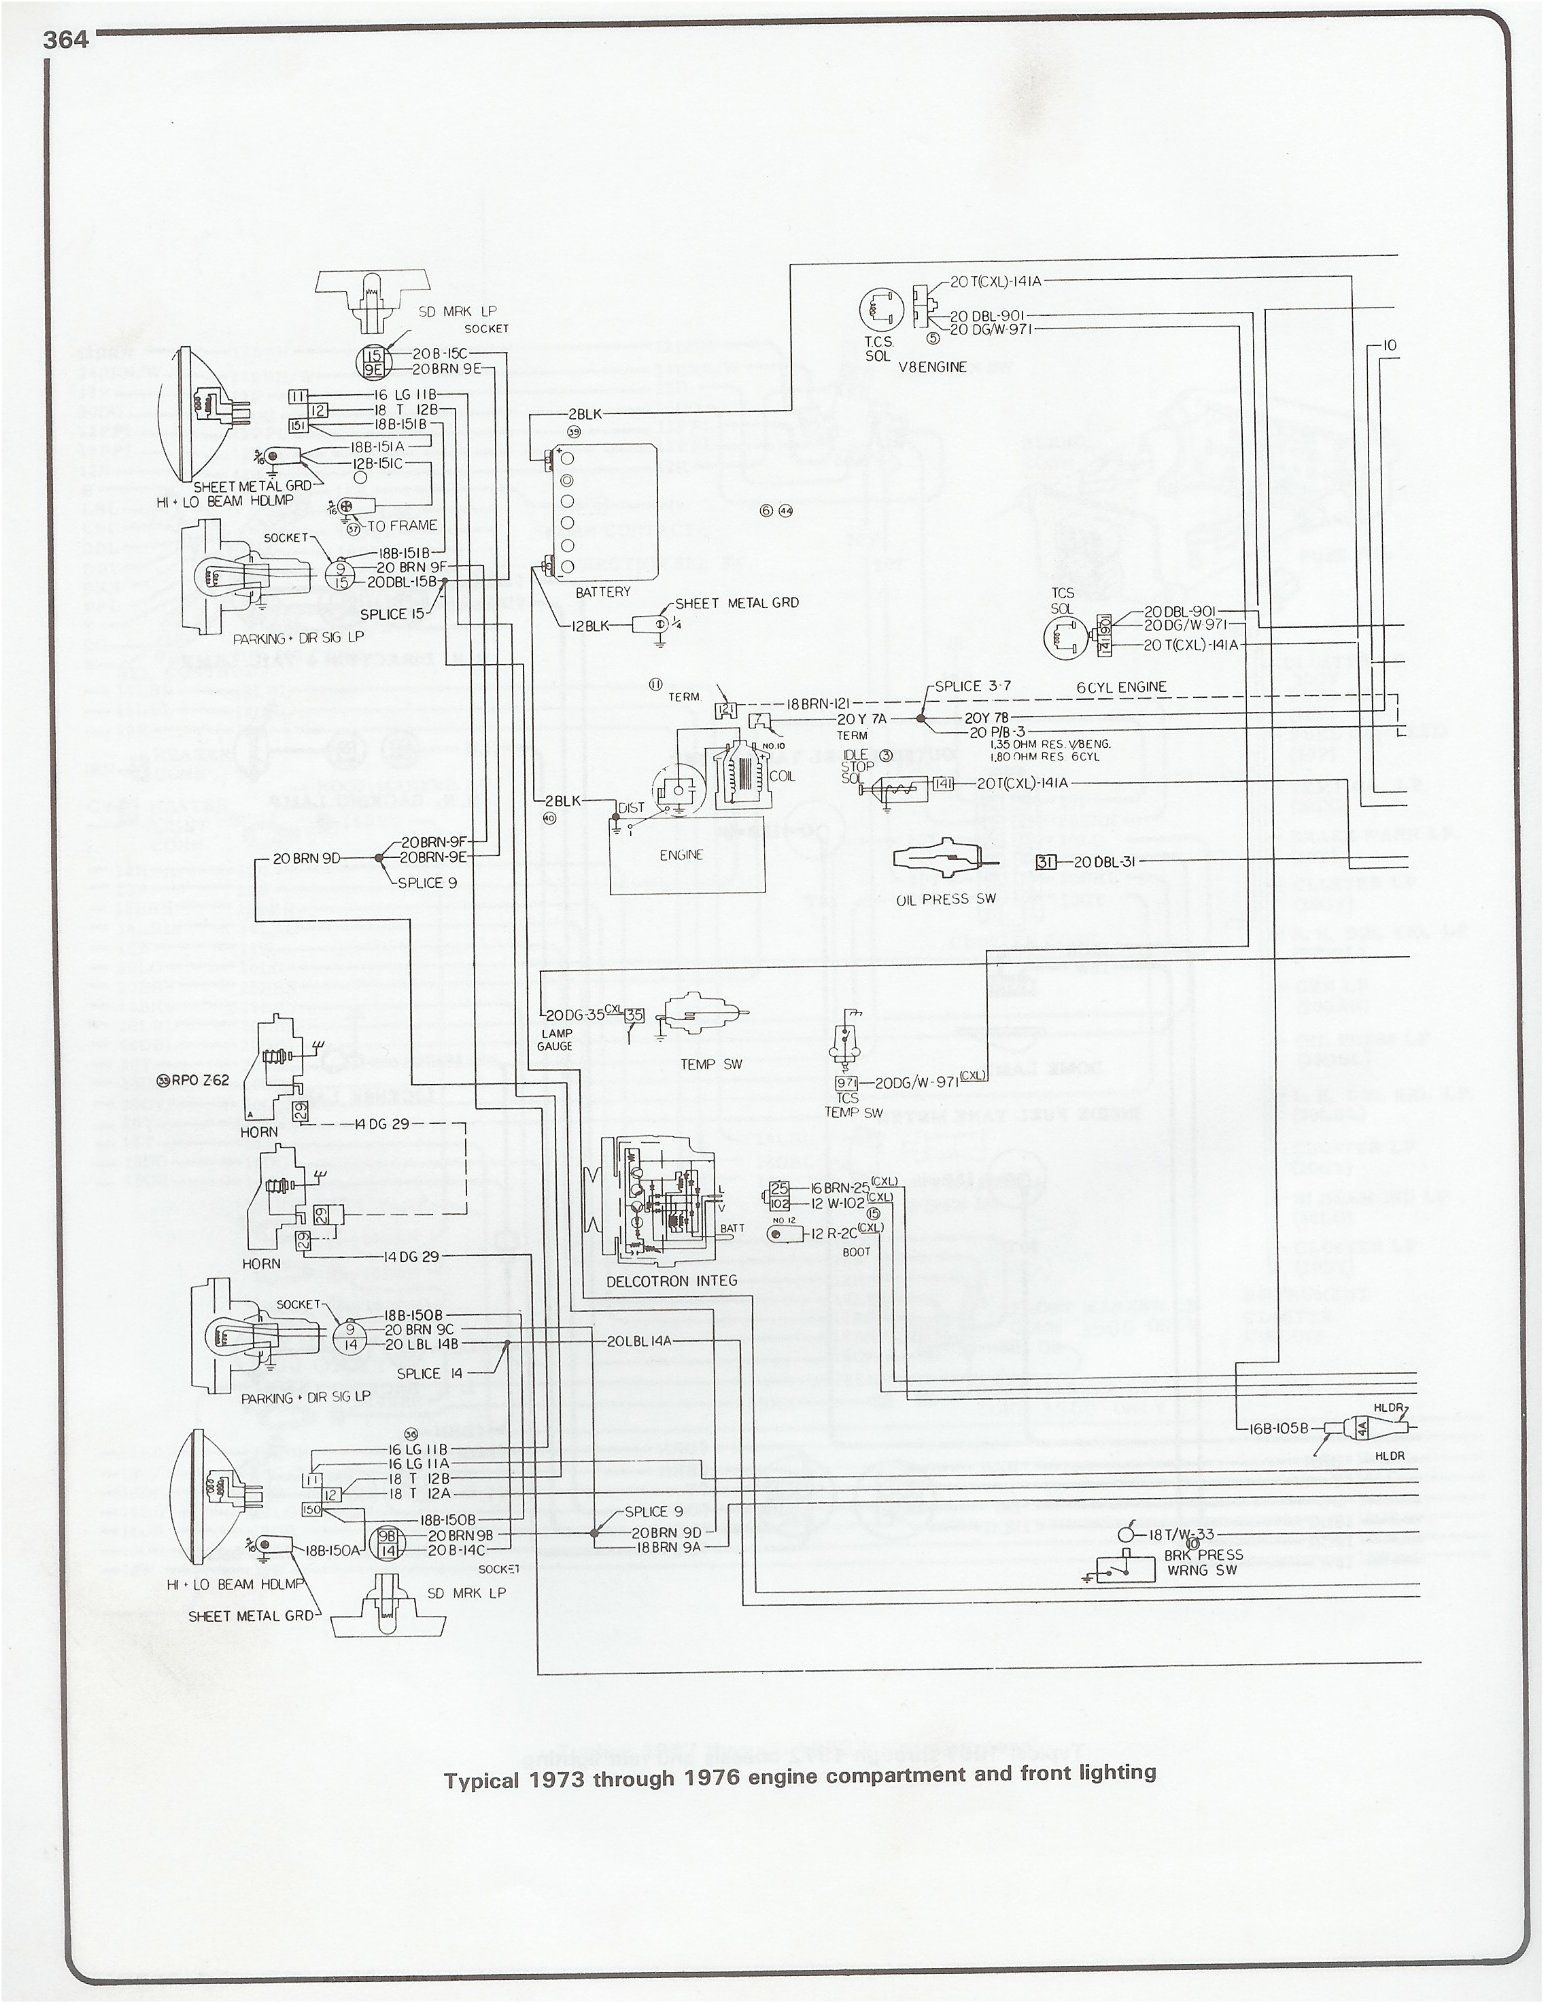 Wiring Diagram 1973 1976 Chevy Pickup Chevy Wiring Diagram 1973 Chevy Truck 1976 Chevy Truck Chevy Pickups